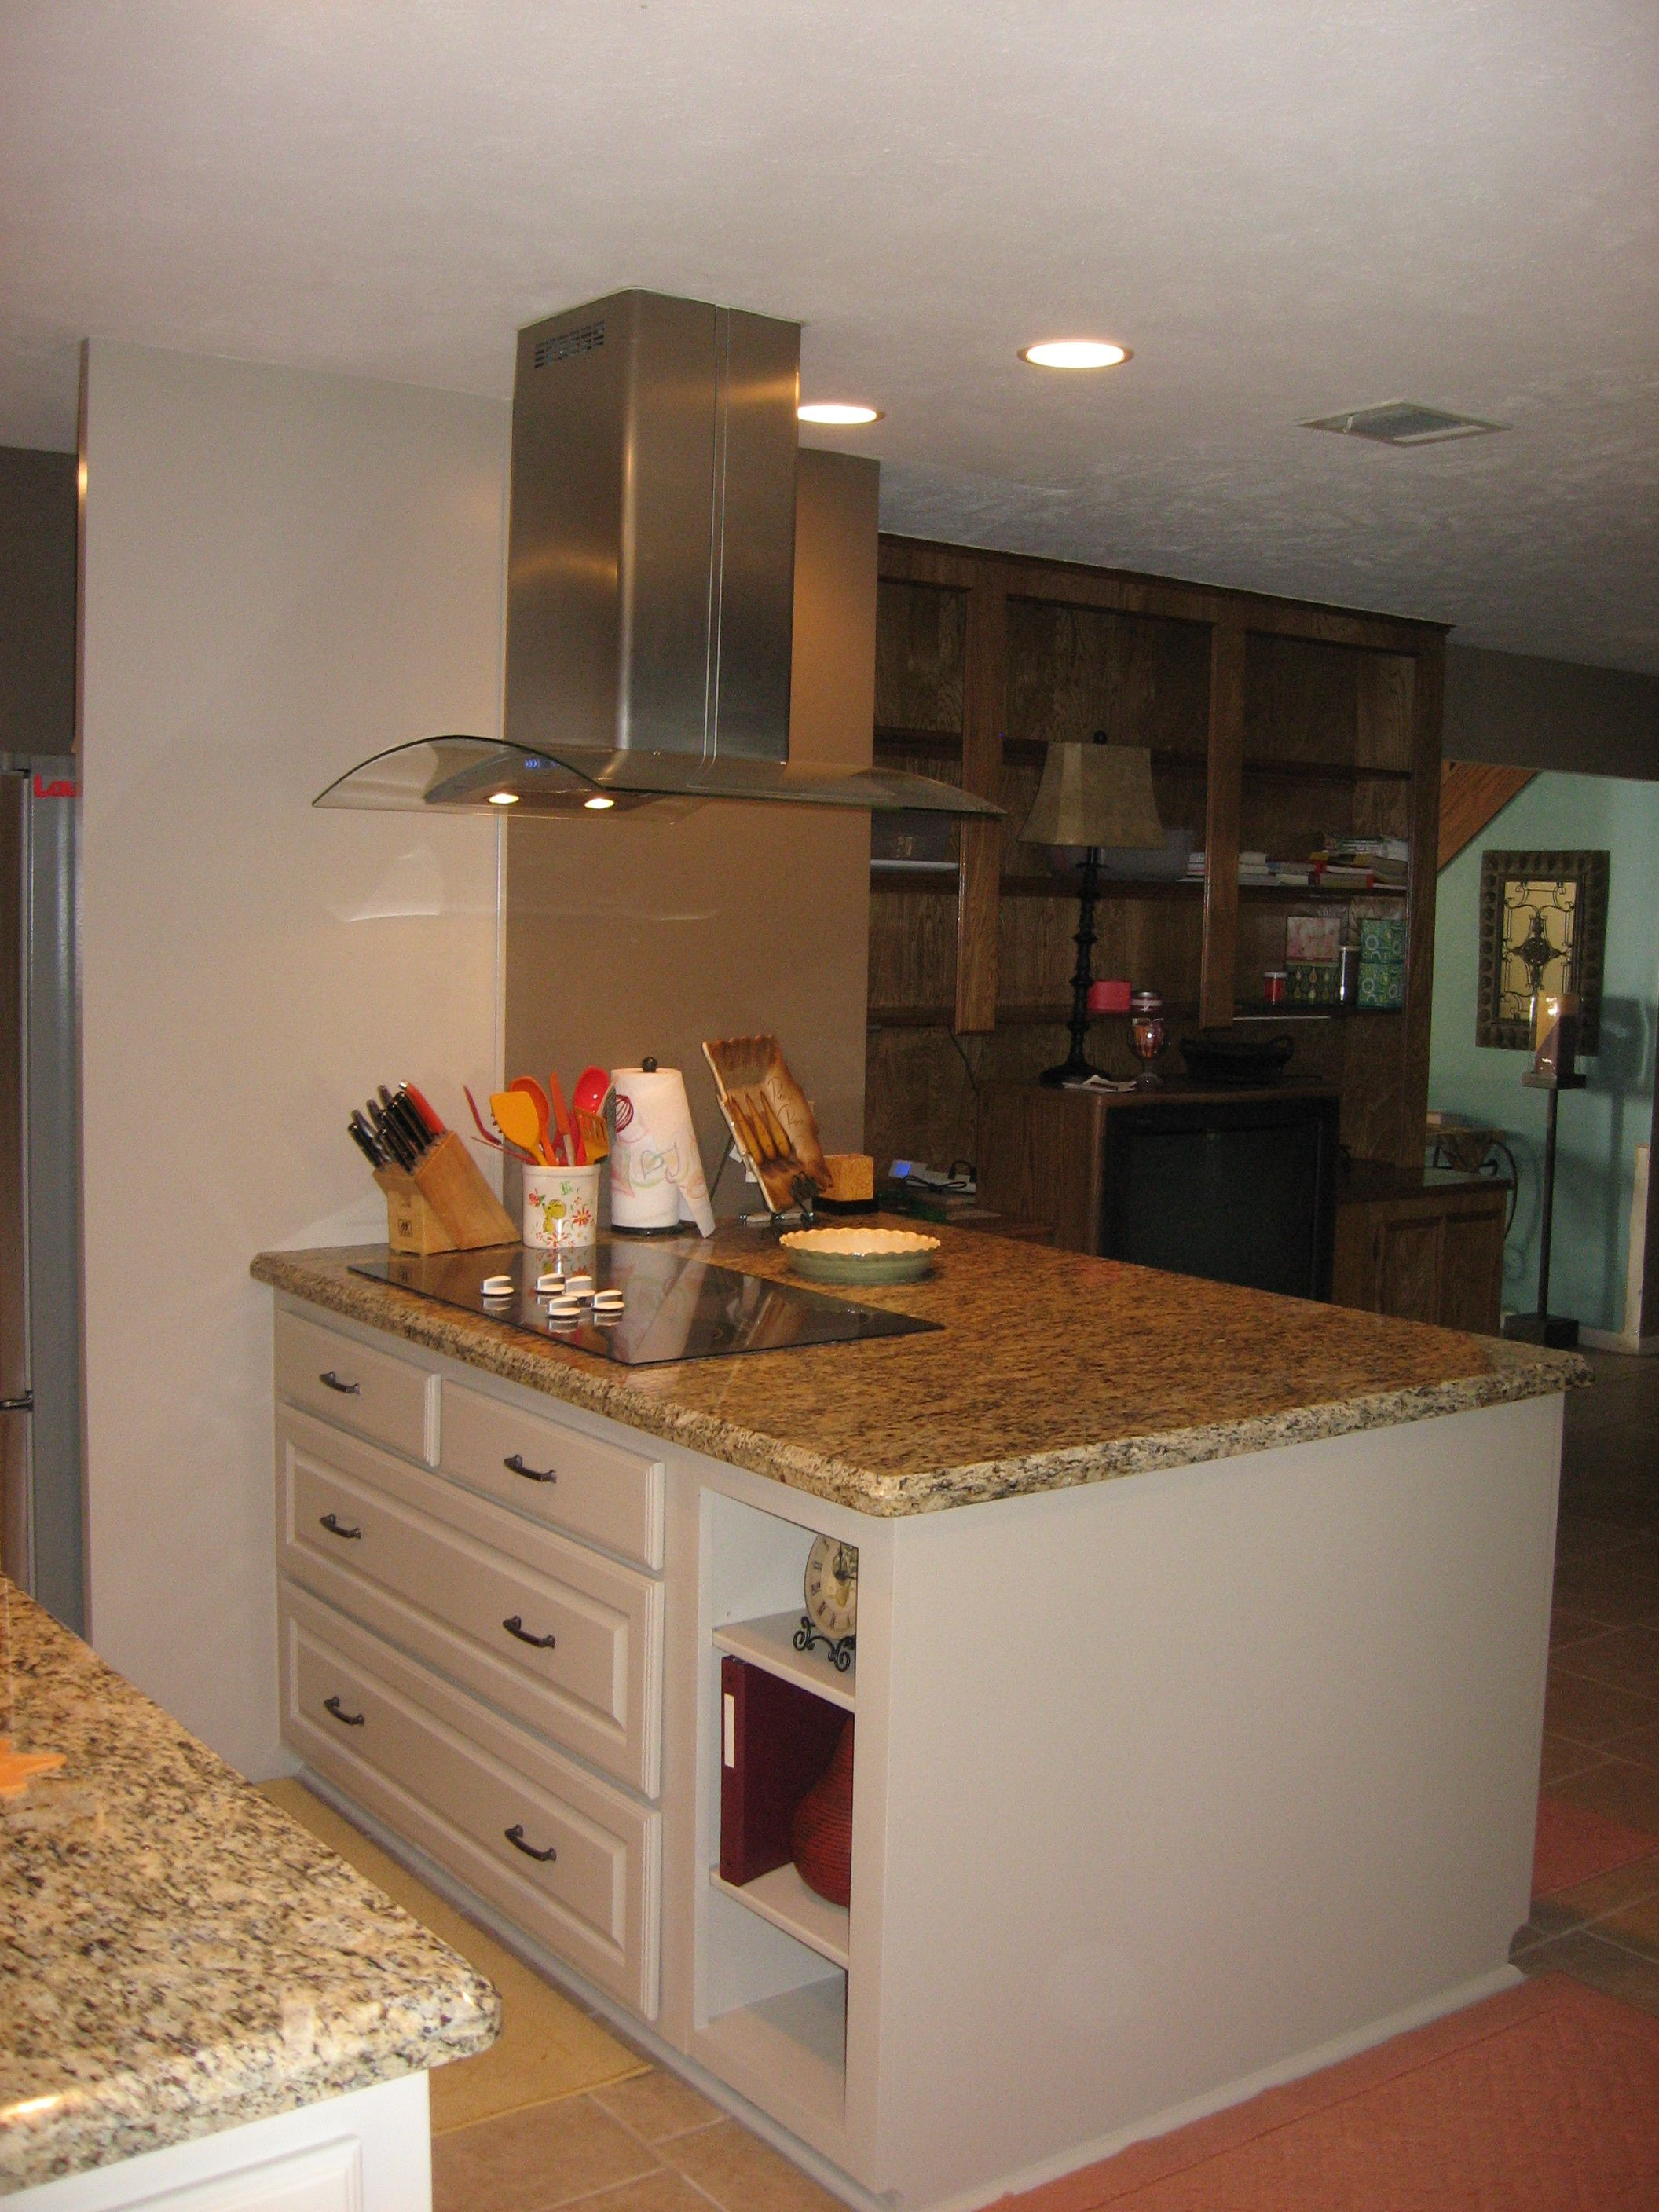 Kitchen Remodel After Removing Load Bearing Wall And Installing A Power Beam To Open Up Kitchen